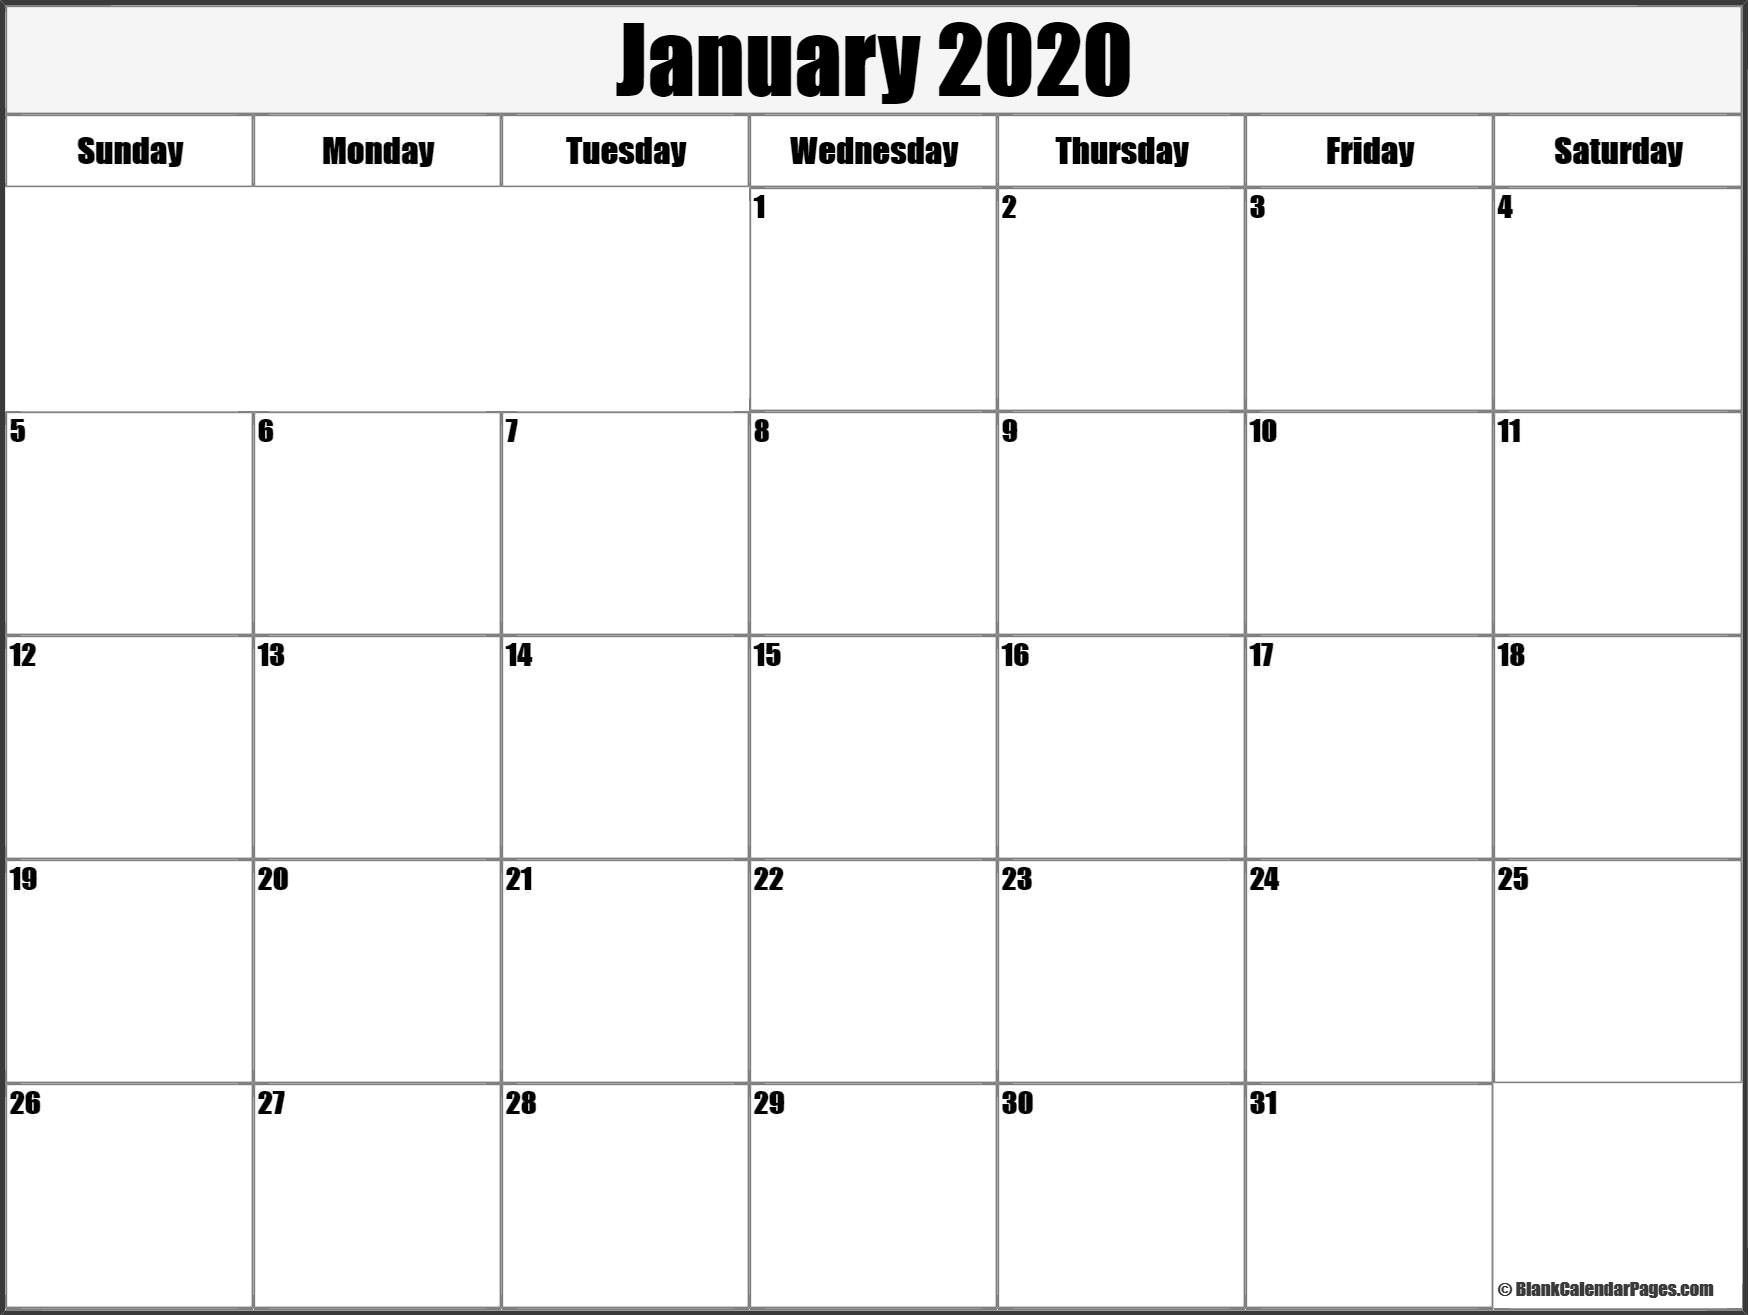 January 2020 Calendar Template #january #january2020 regarding Disney Printable Calendar